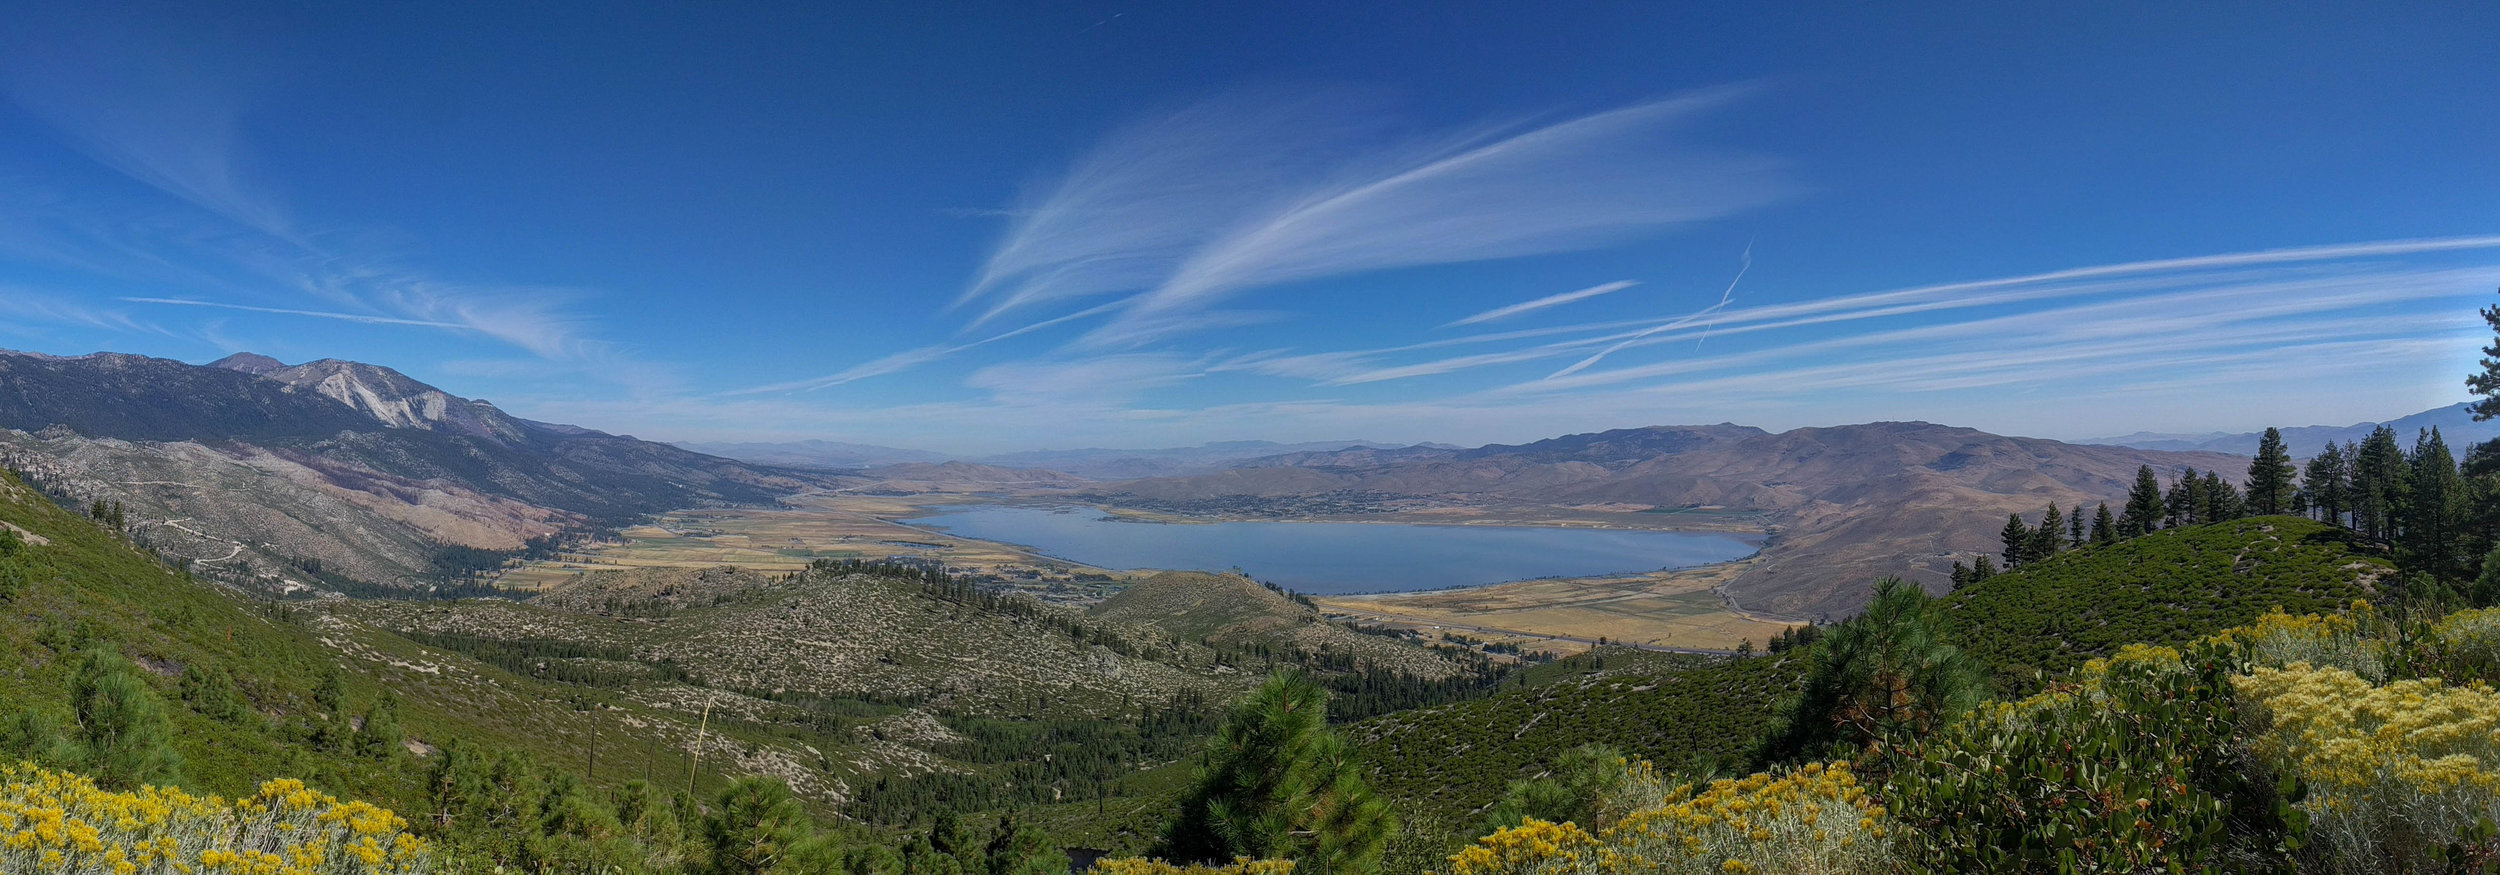 Washoe Valley view from Franktown Creek Rd, CAR (NV) Sep-2018